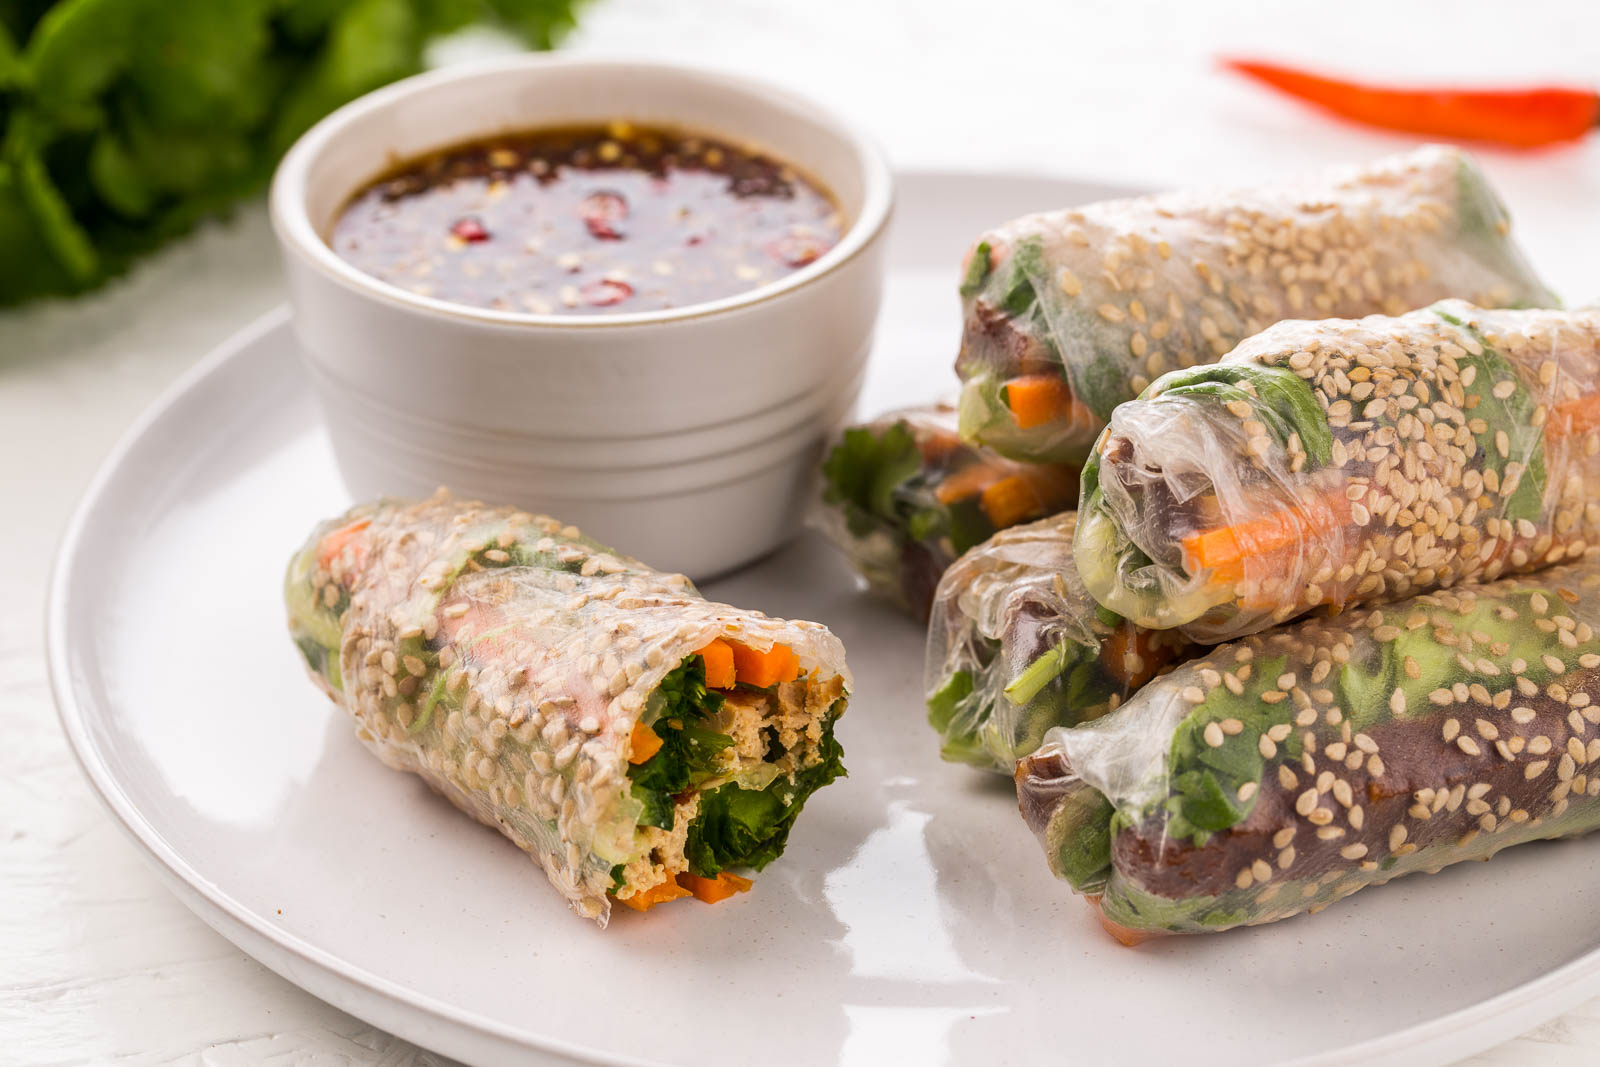 Yoo Food: Tofu & Vegetable Spring Rolls